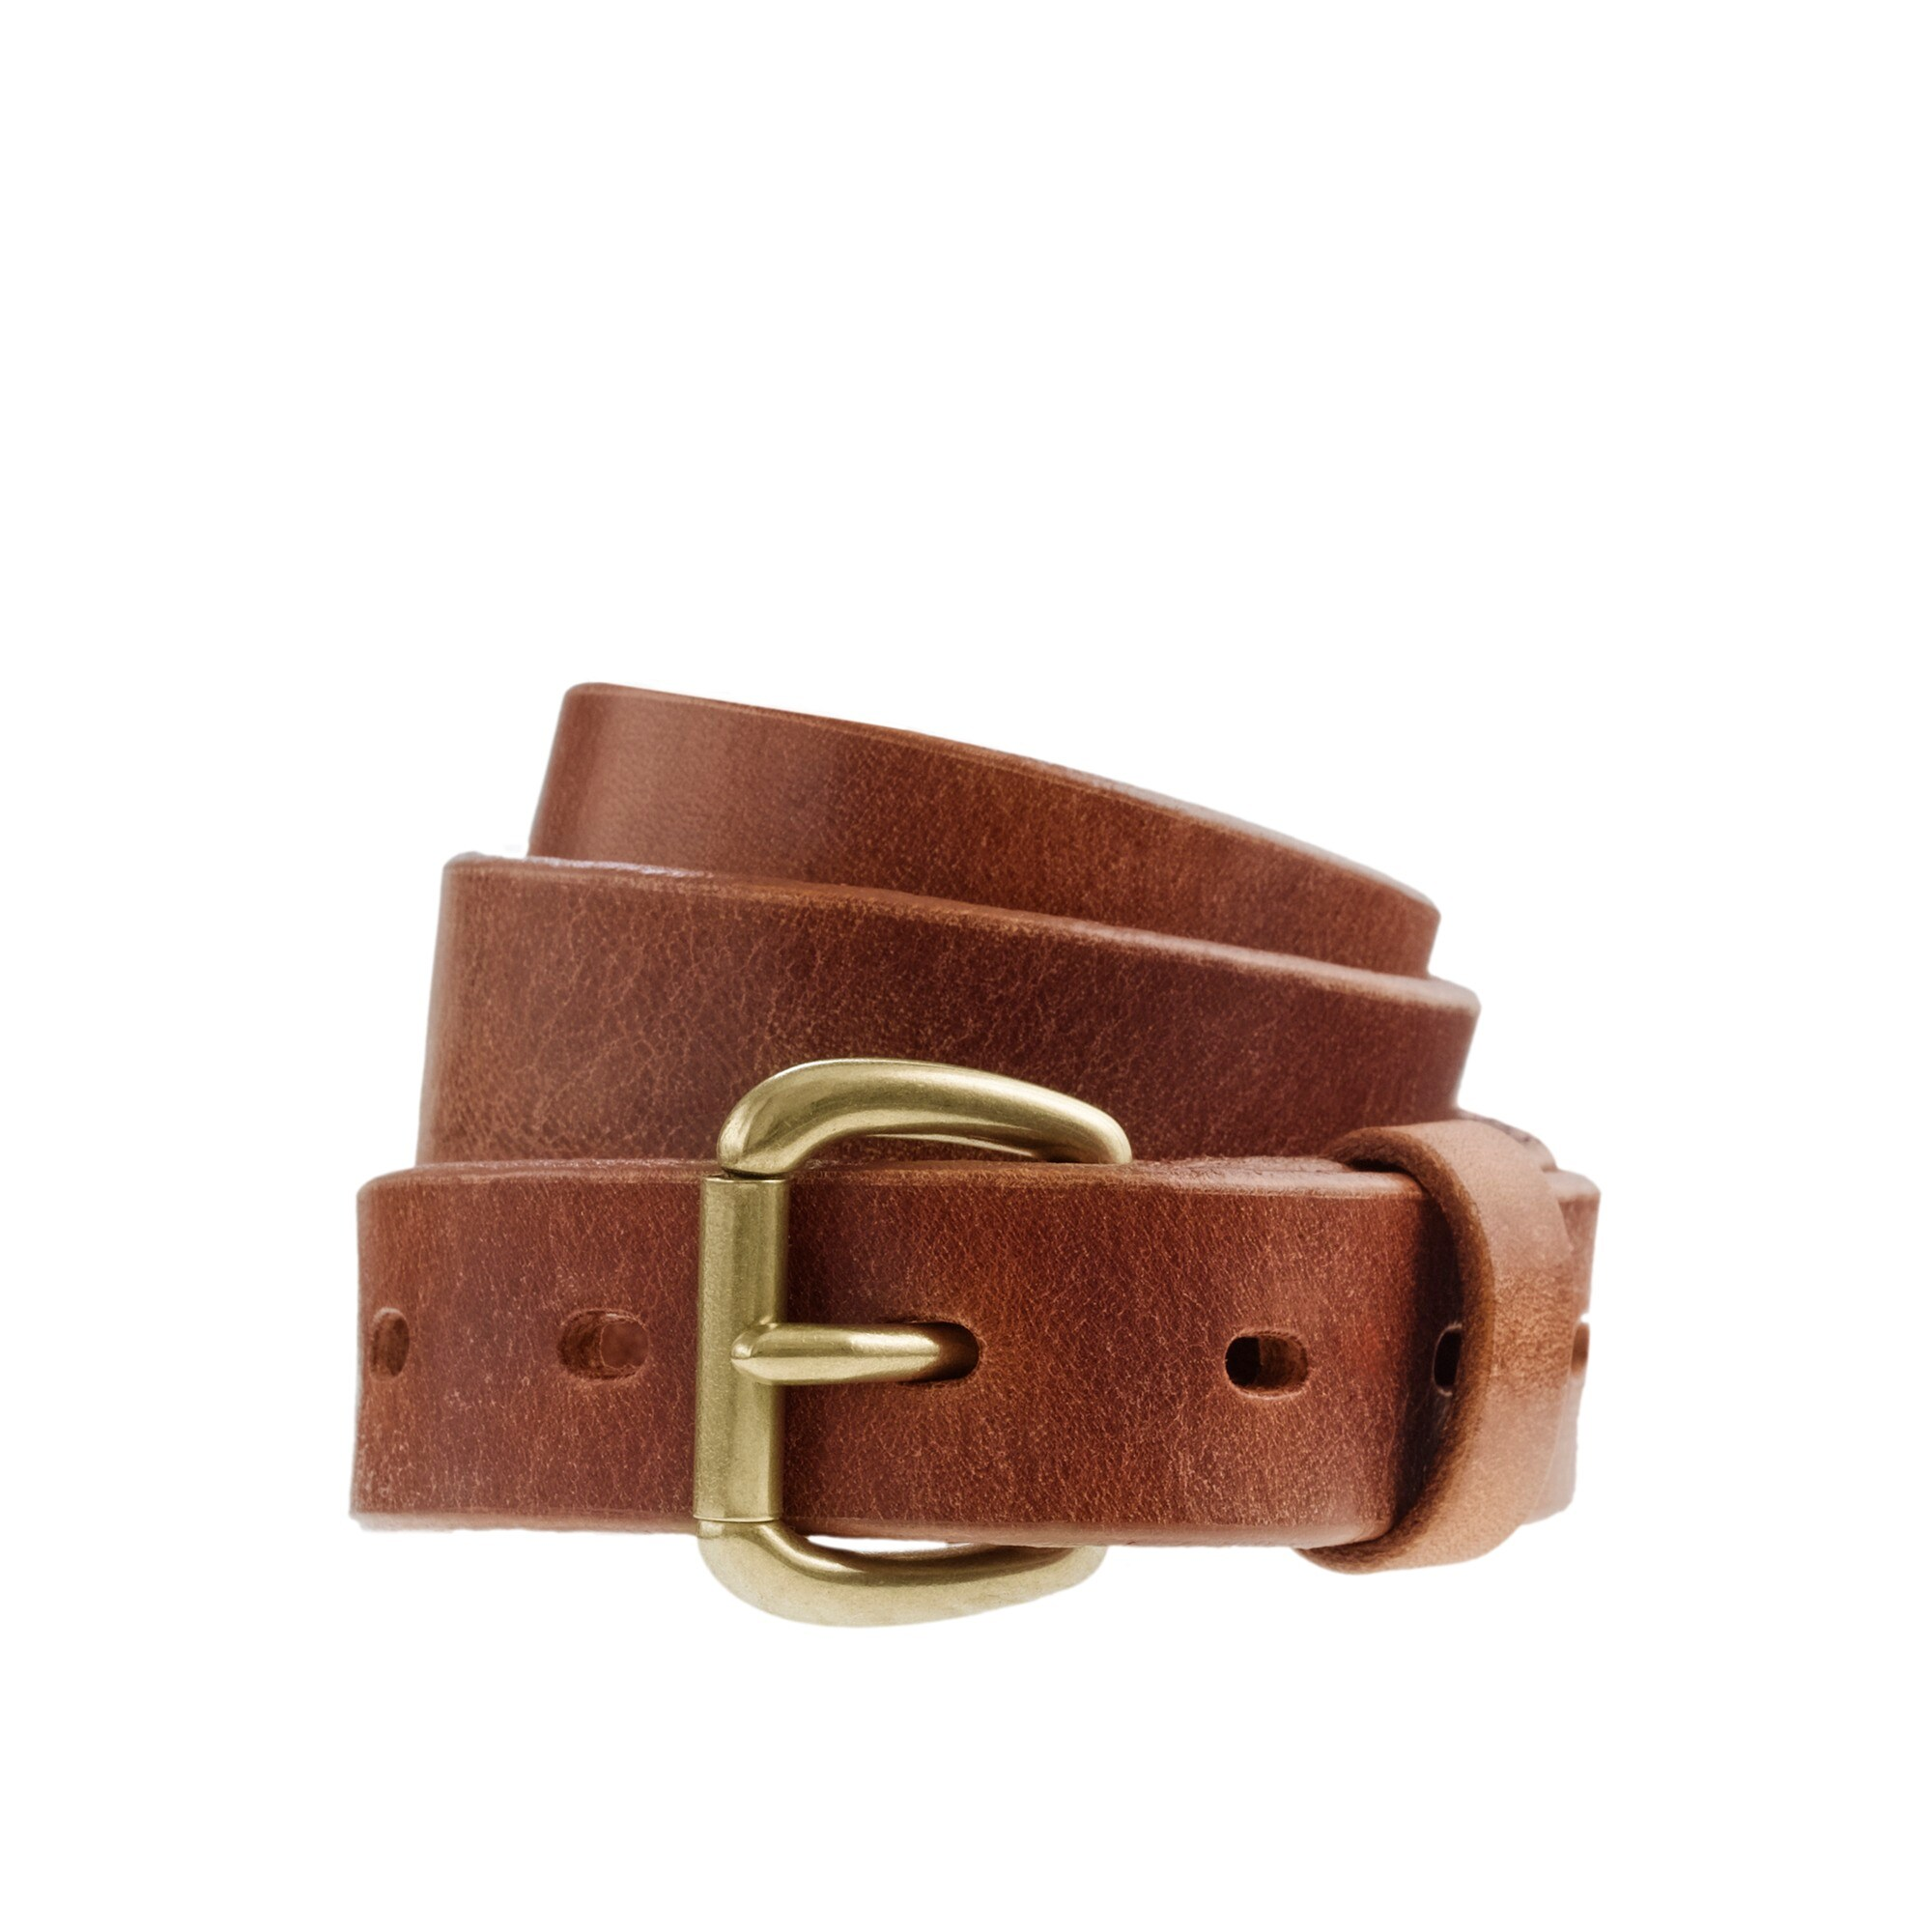 Leather denim belt